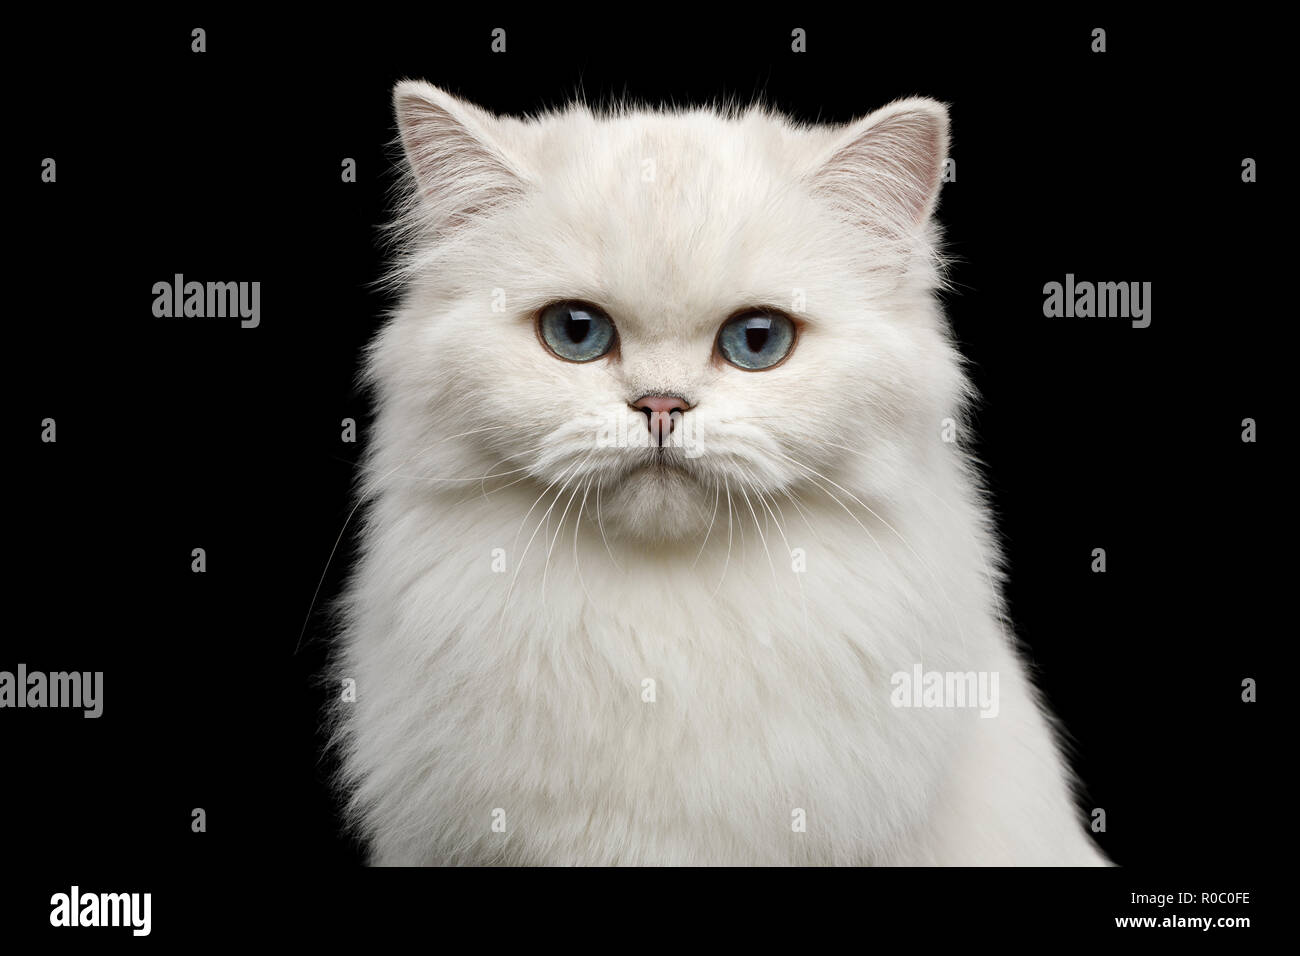 Portrait of British breed Cat, Pure White color with Blue eyes, looking in Camera on Isolated Black Background, front view - Stock Image